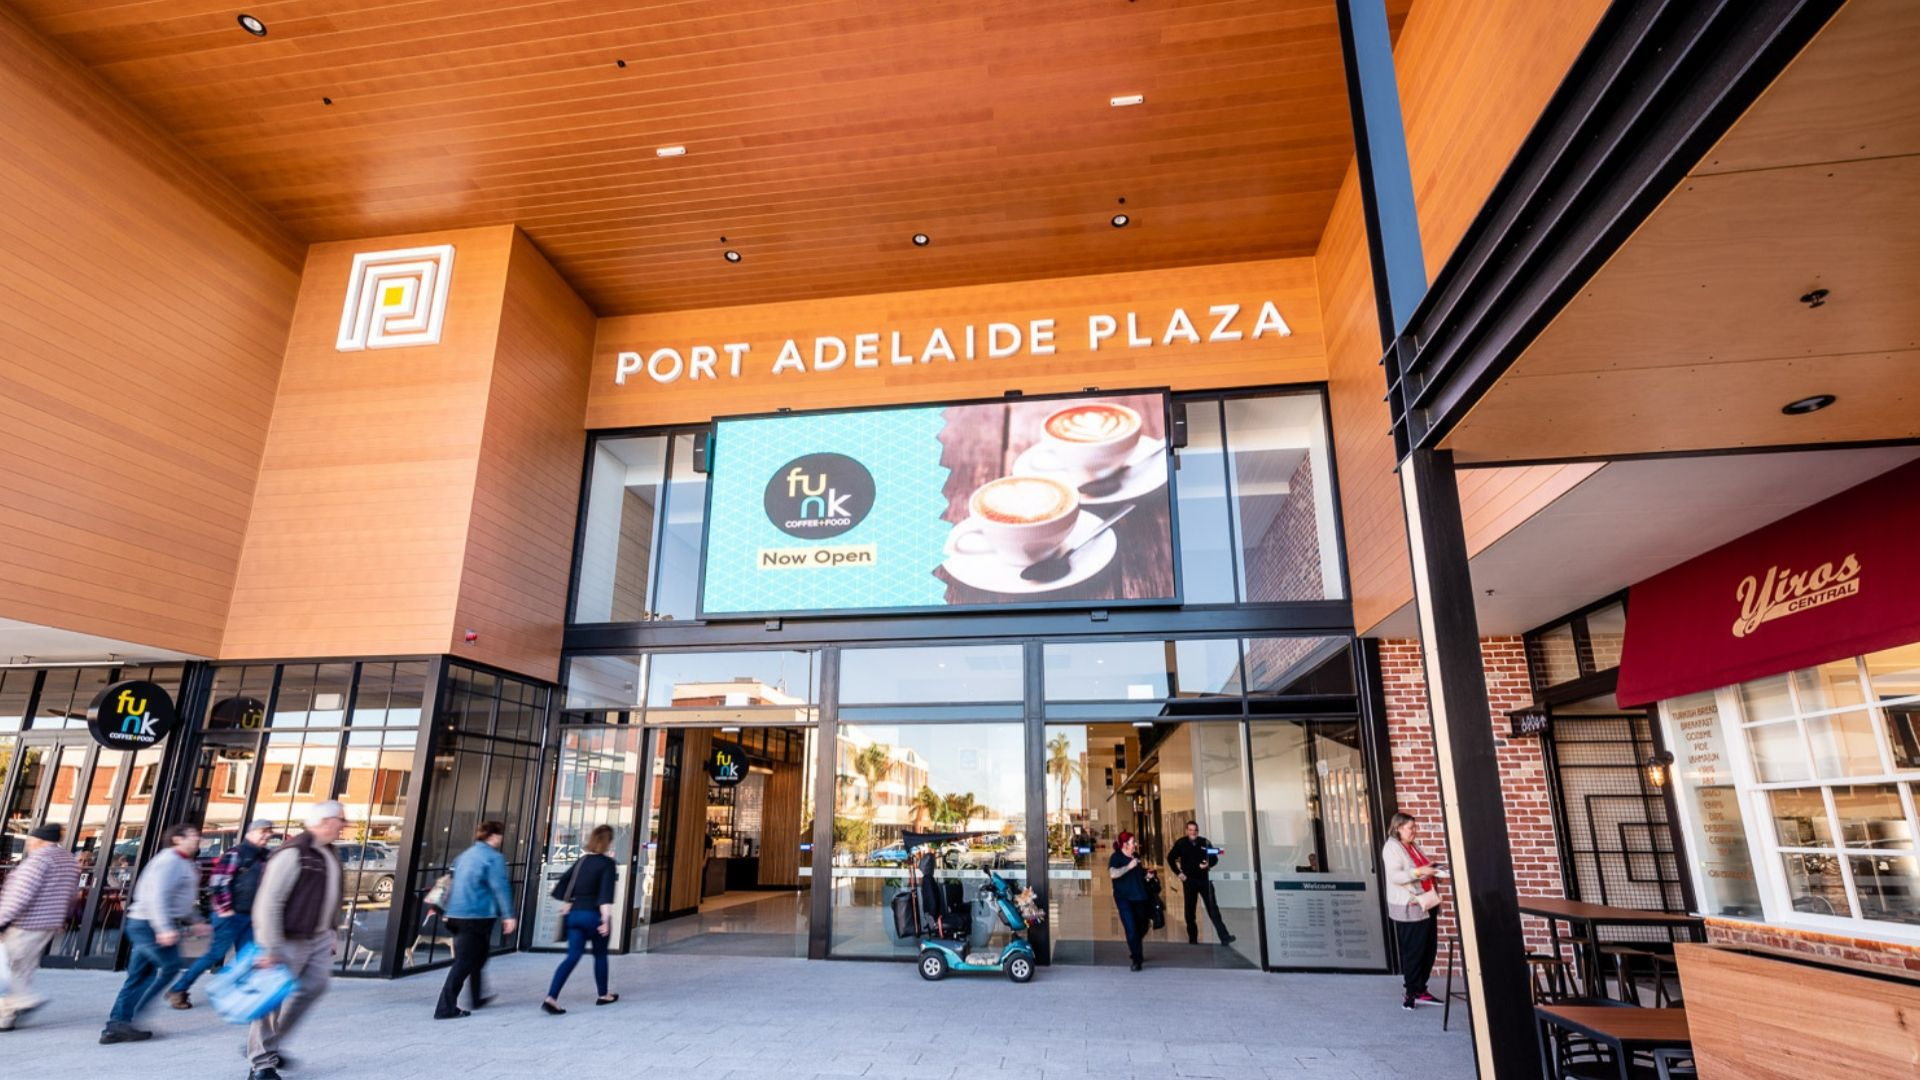 Port Adelaide Plaza - Entry